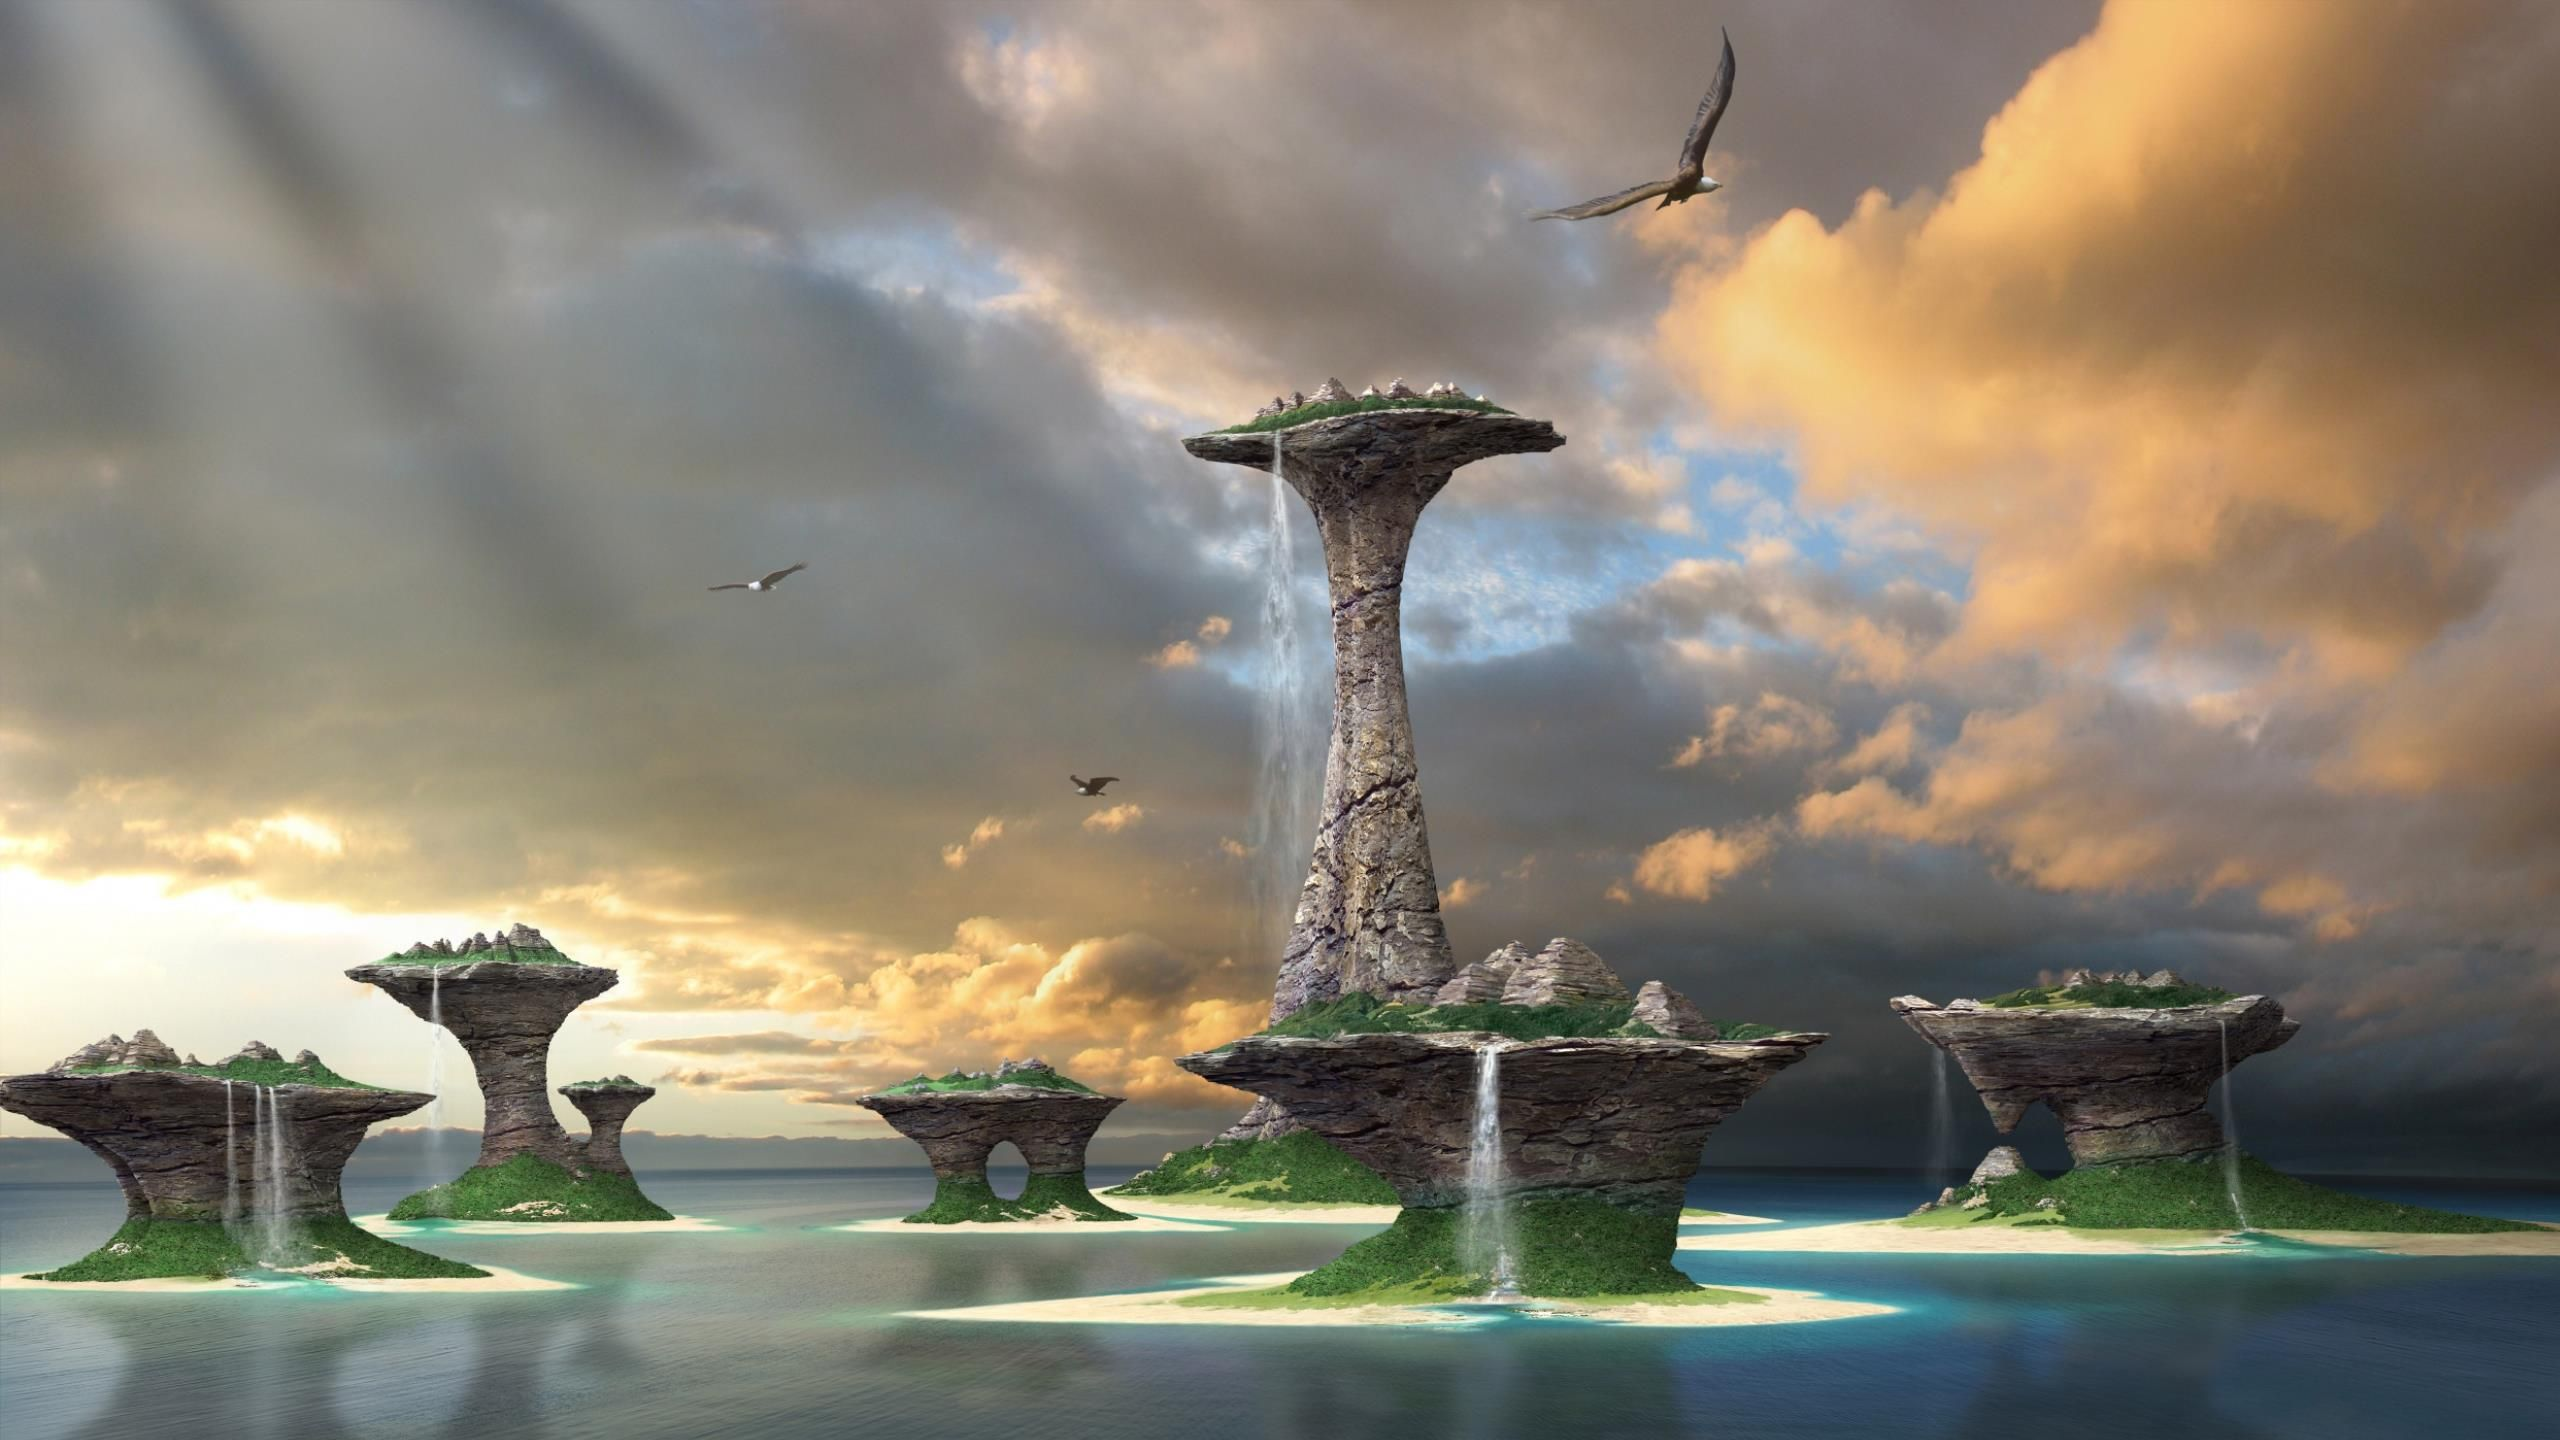 fantasy waterfall World wallpaper, Waterfall wallpaper